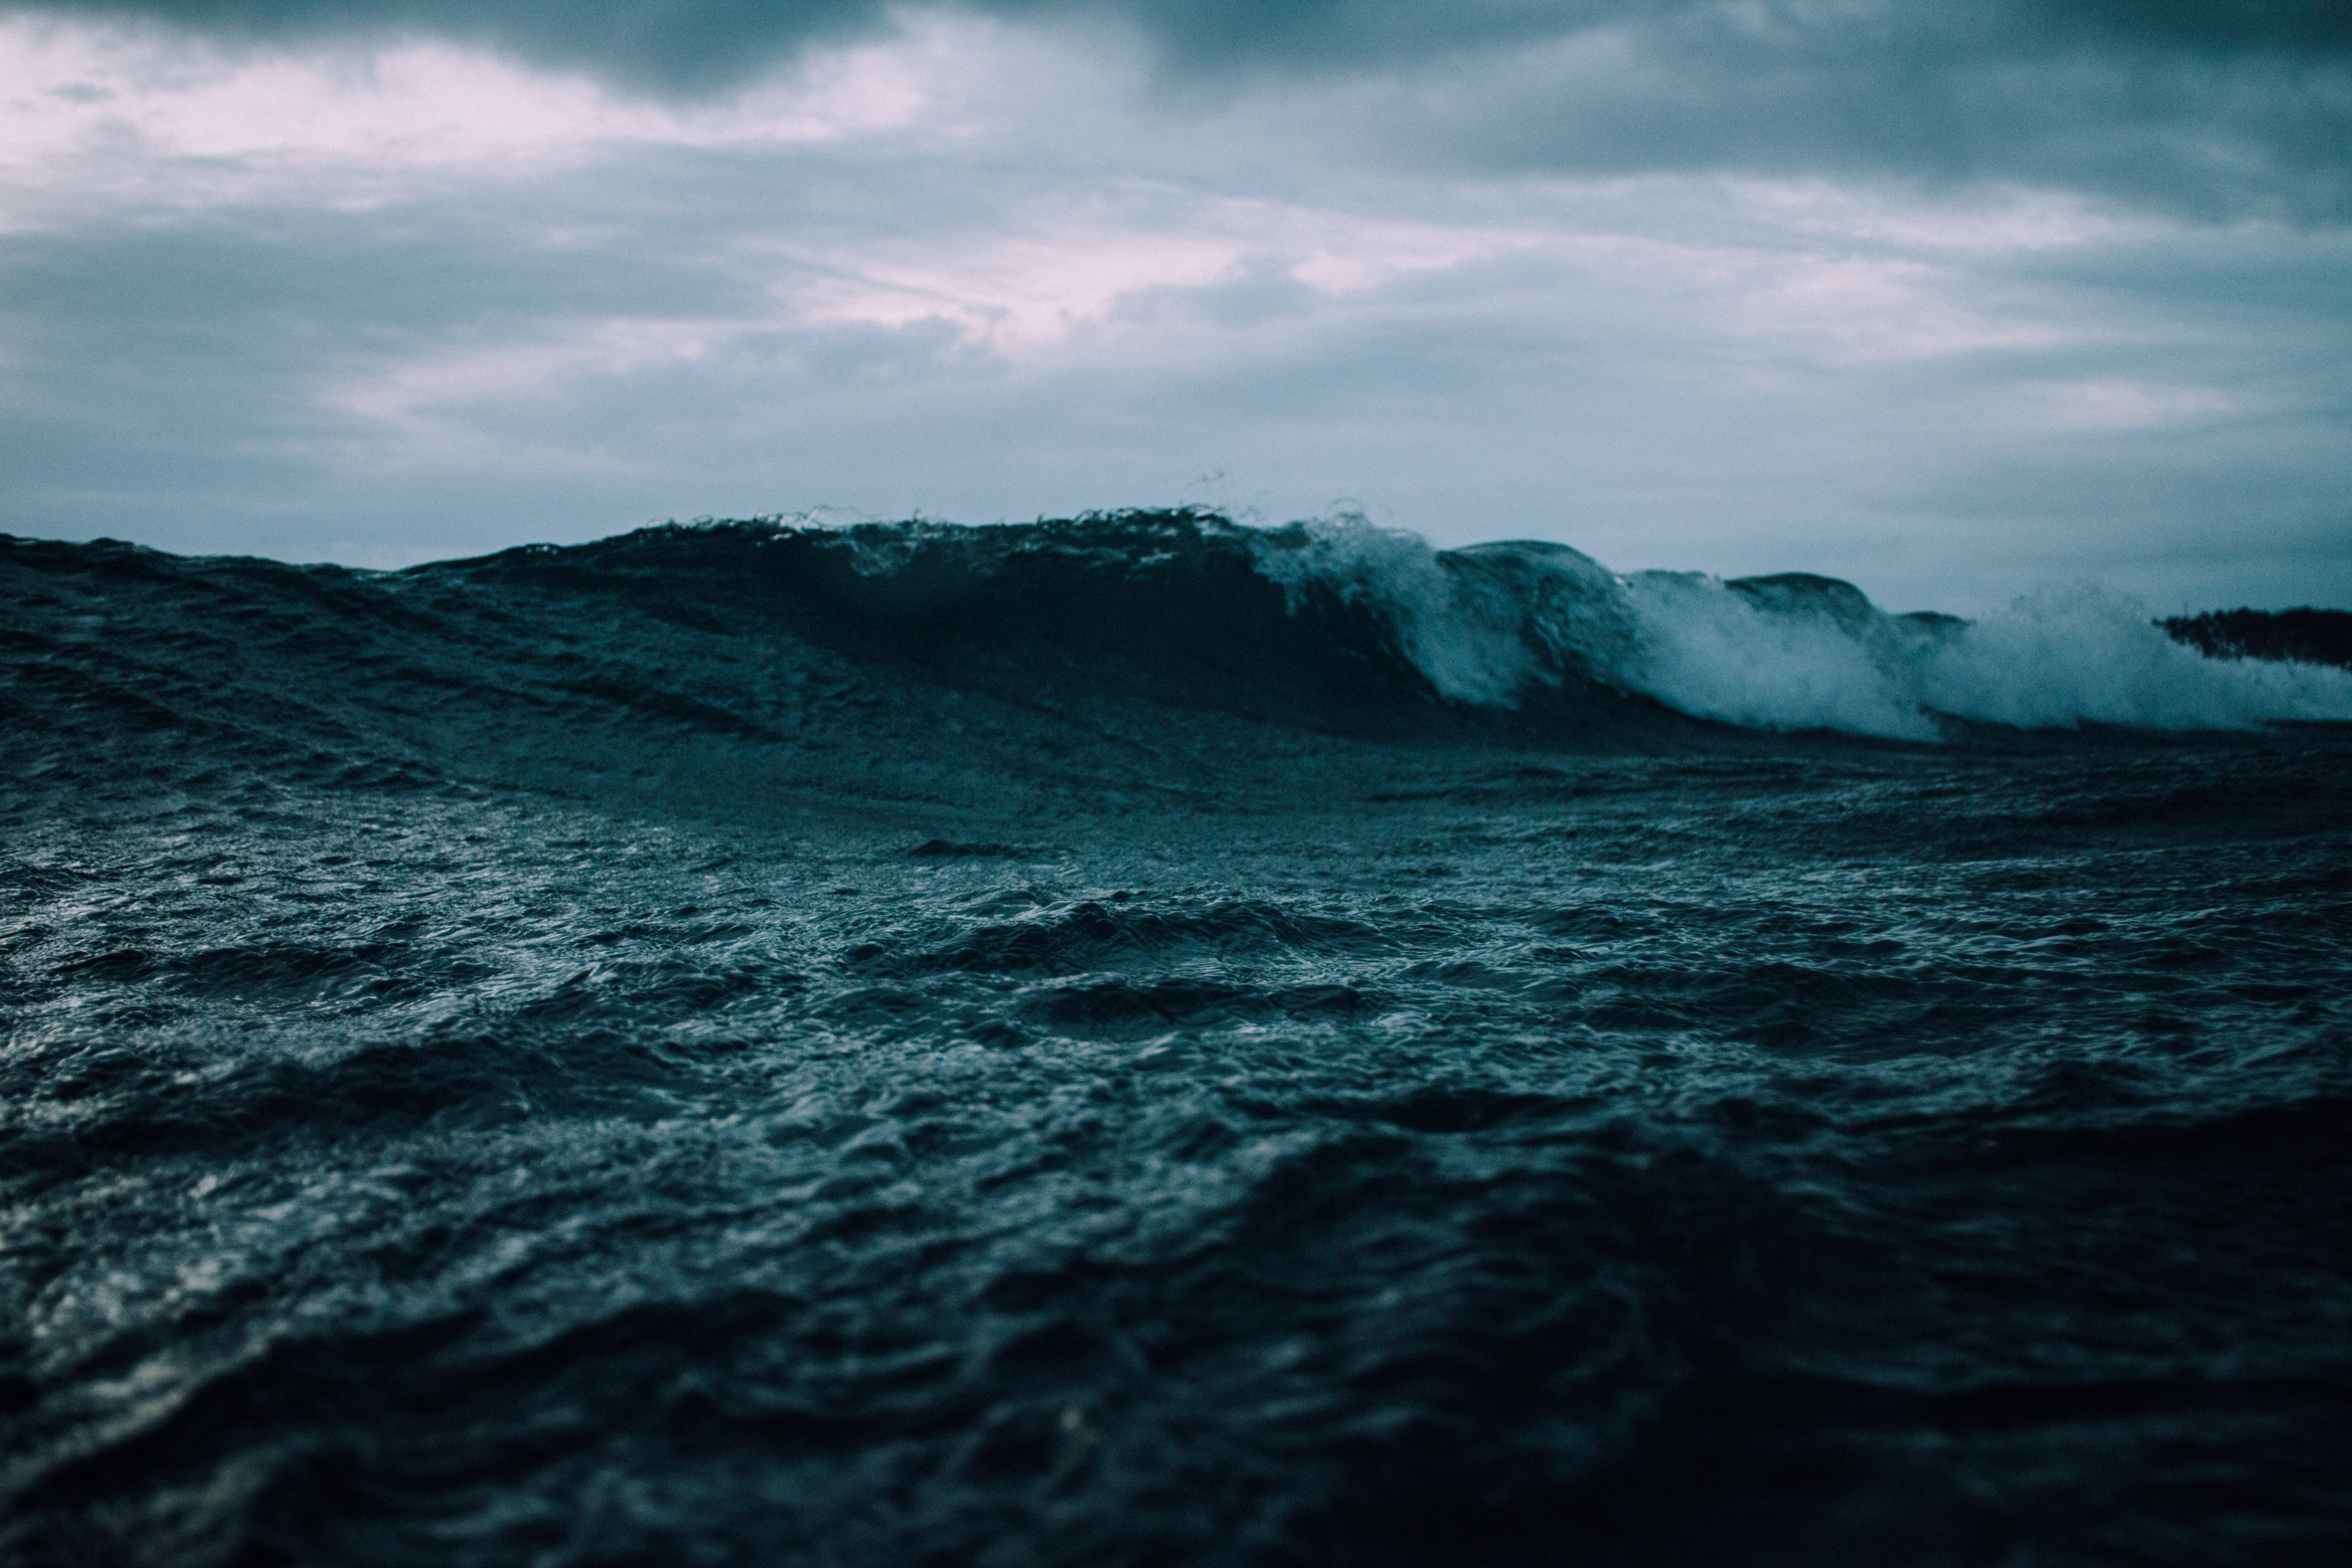 A wave rolling on a turbulent sea, beneath a moody cloudy sky at Omaha